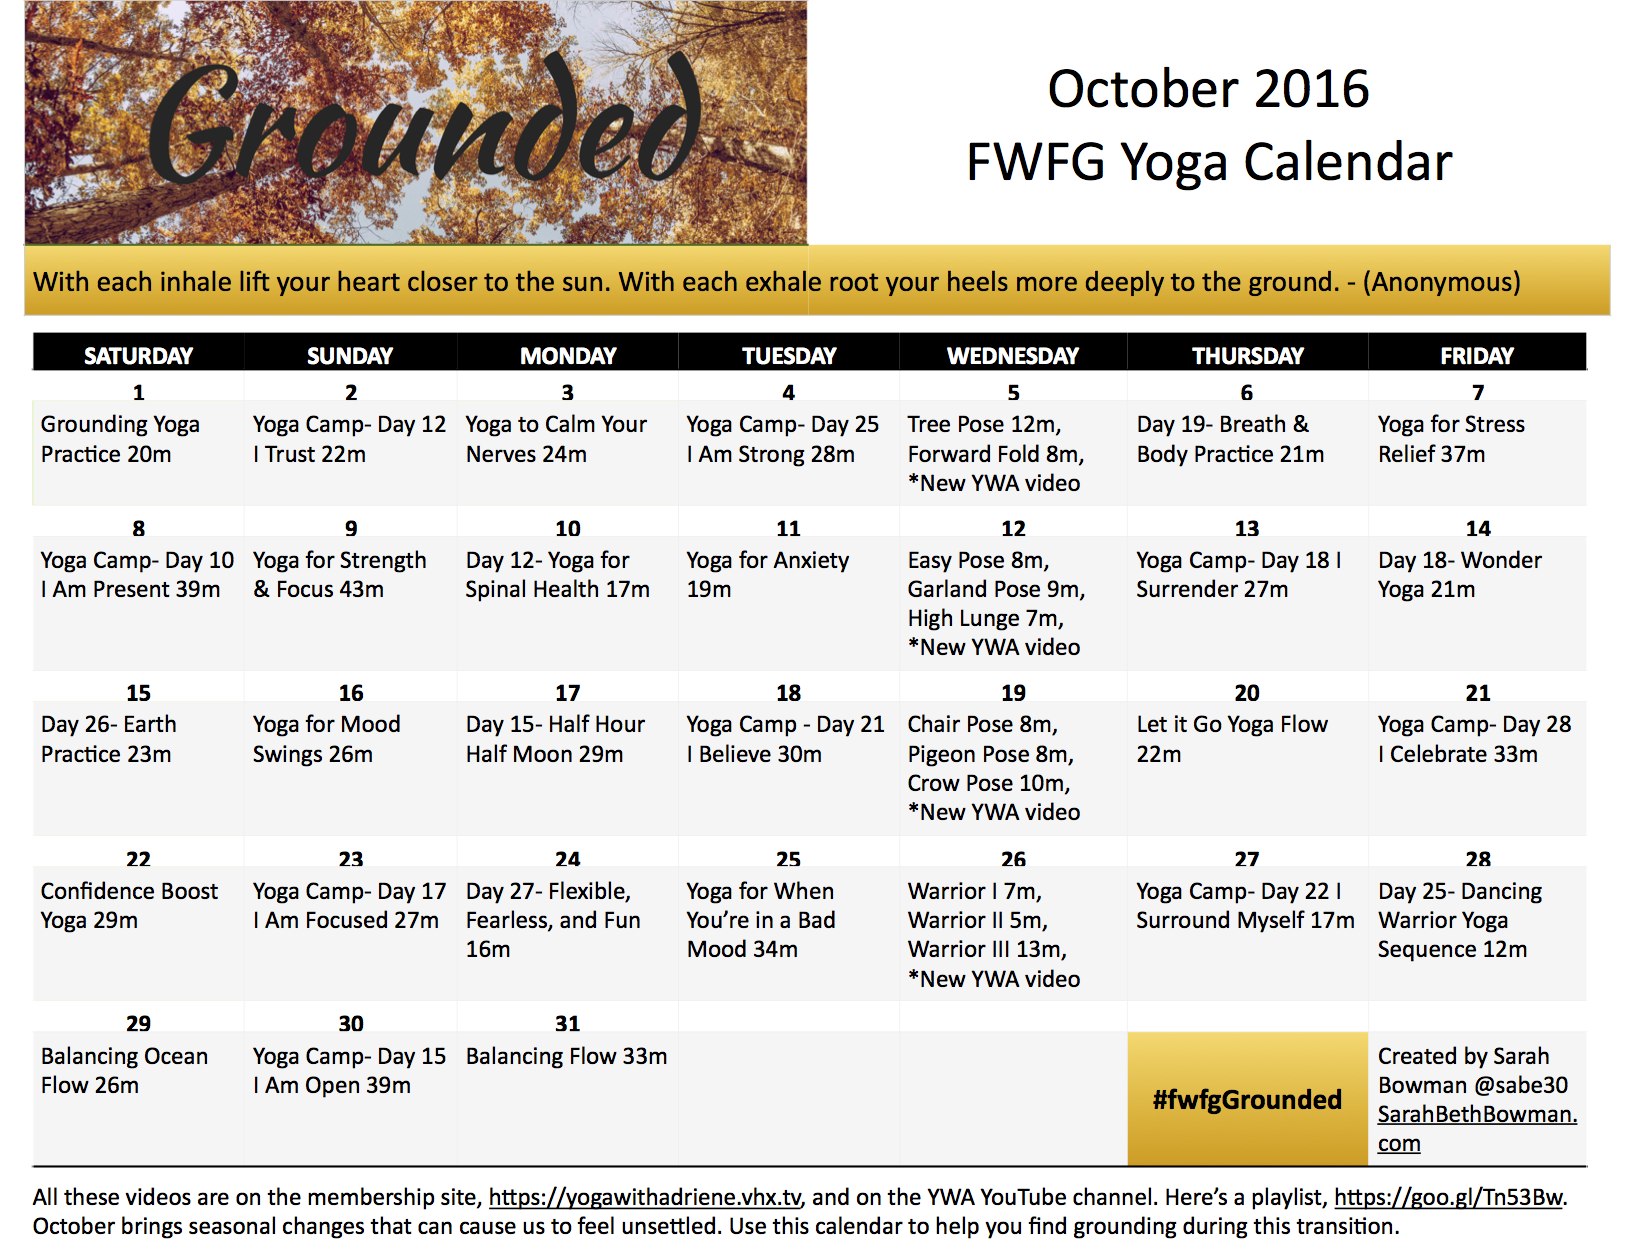 Click on the photo to download a PDF of the calendar.